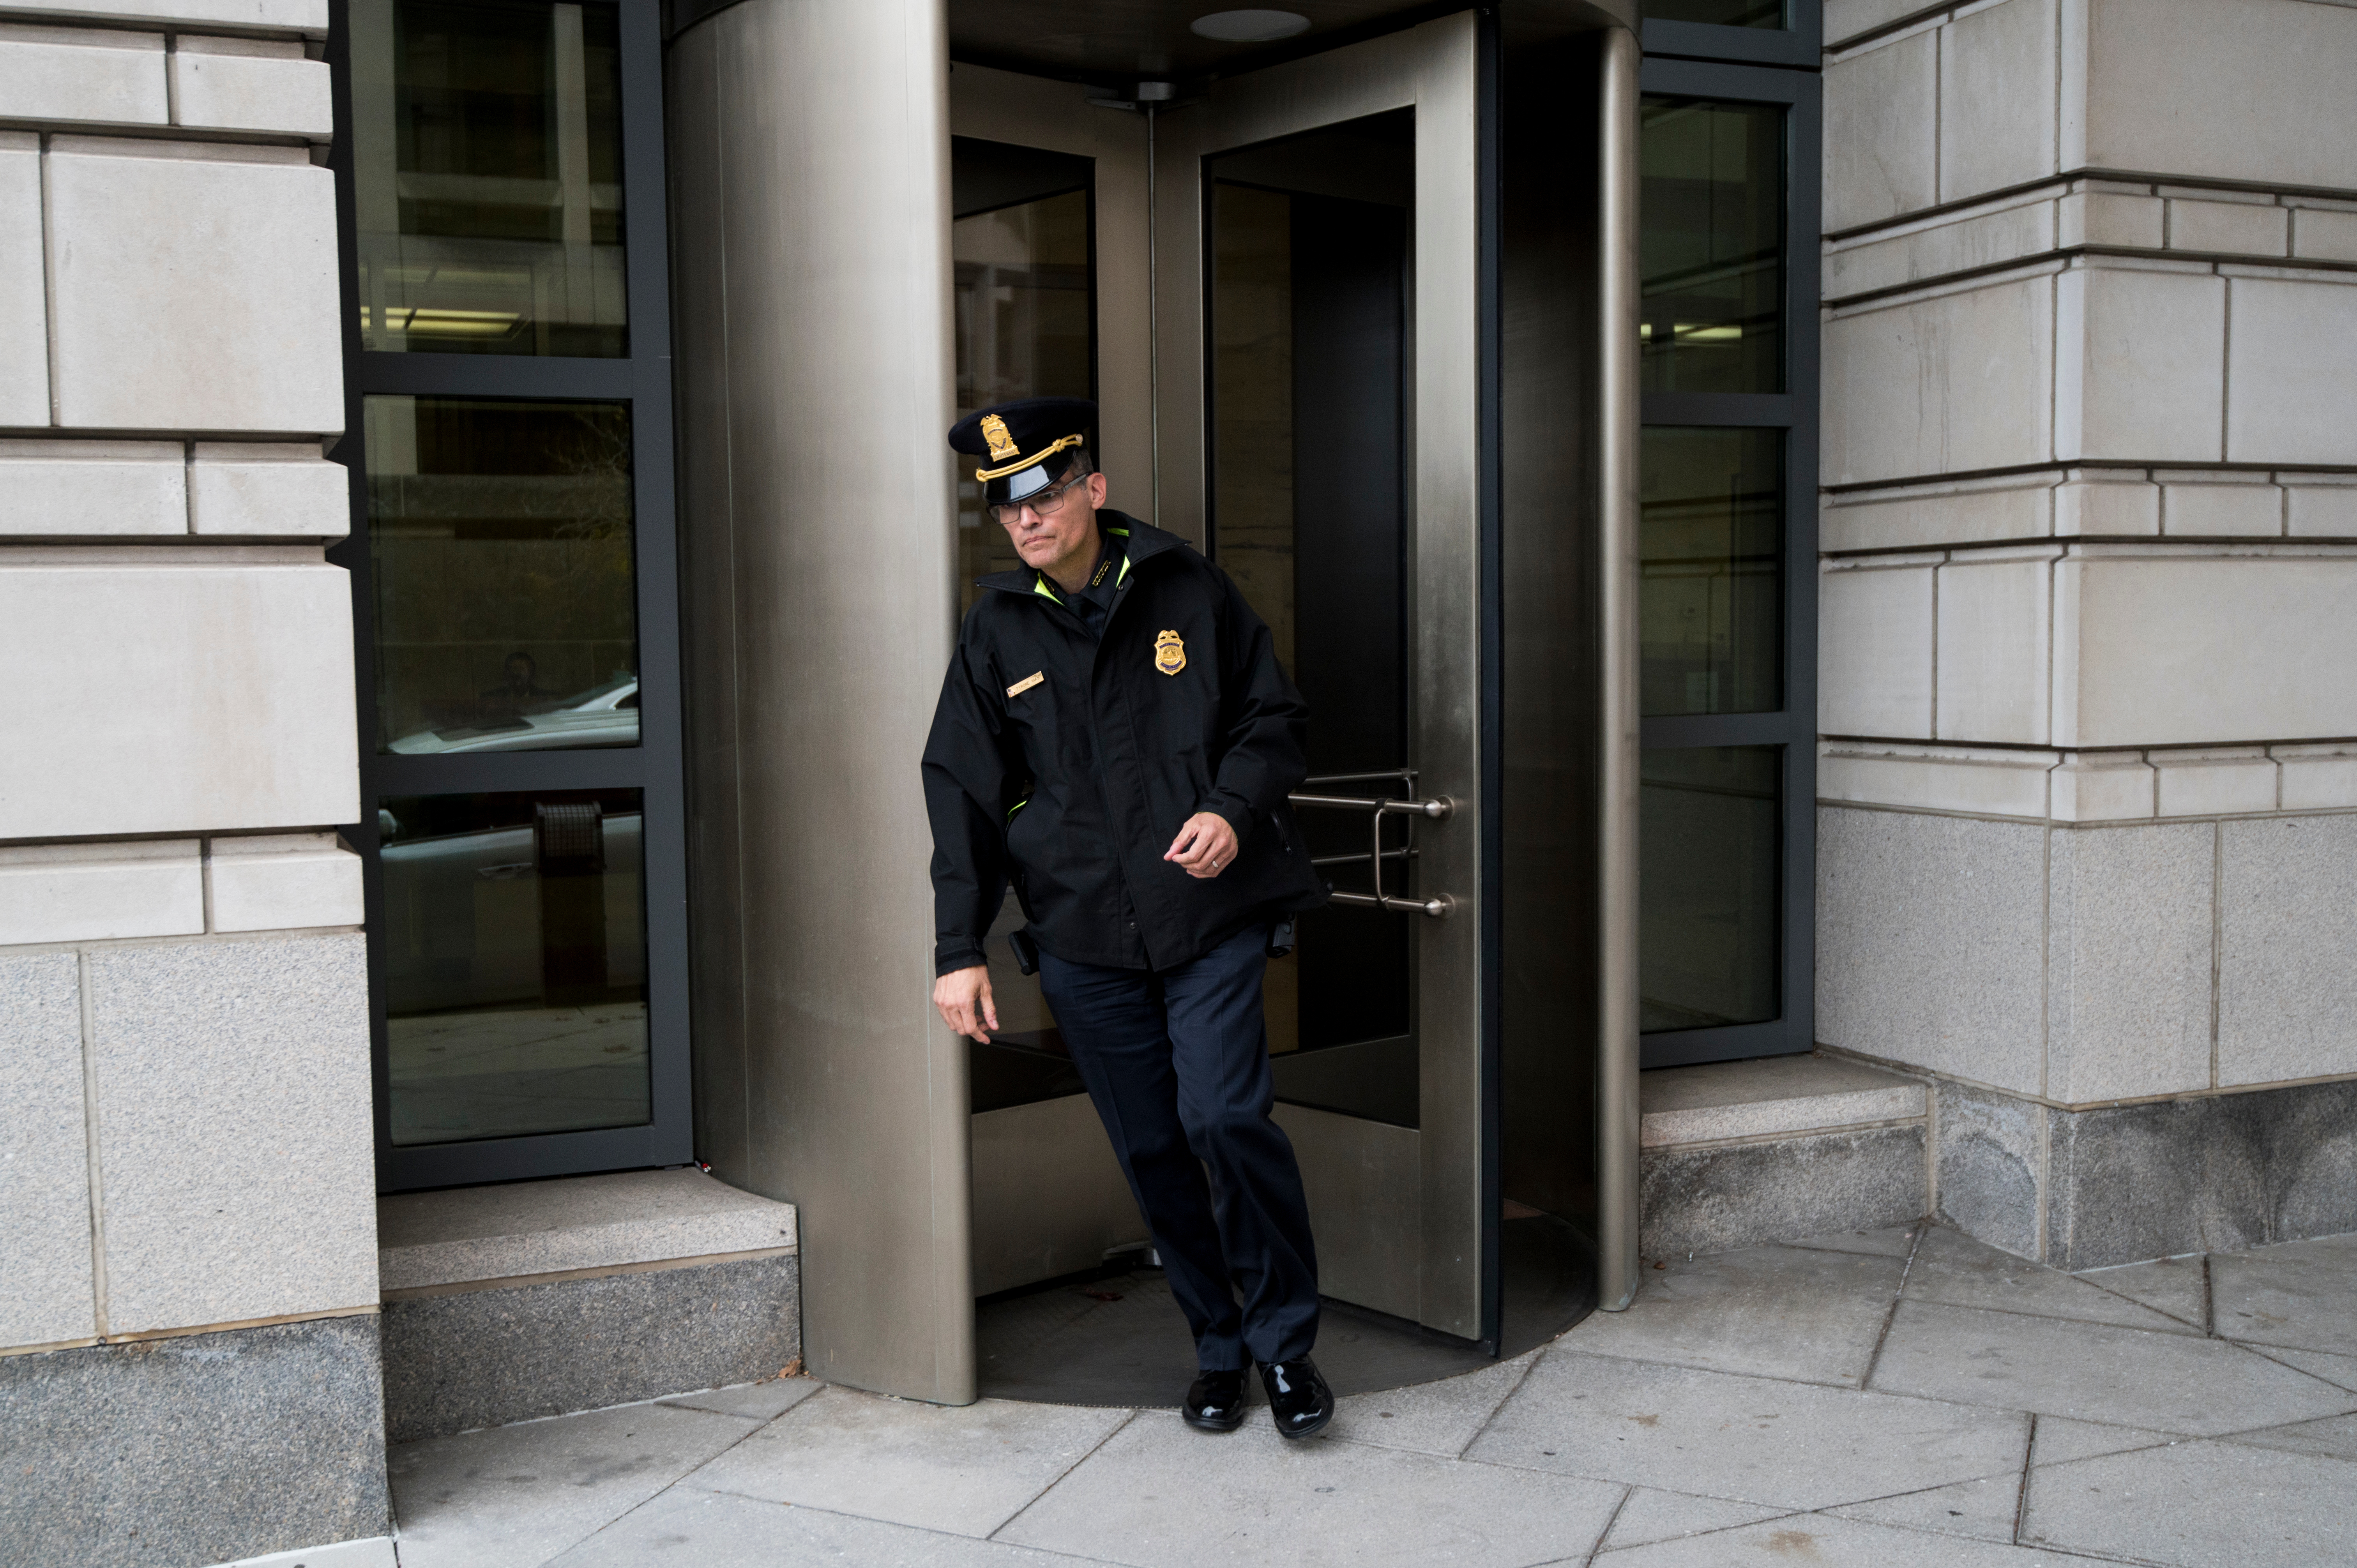 UNITED STATES - NOVEMBER 7: Tyrone Vias of the U.S. Capitol Police leaves the E. Barrett Prettyman Federal Courthousel on Thursday Nov. 7, 2019. (Photo By Bill Clark/CQ Roll Call)